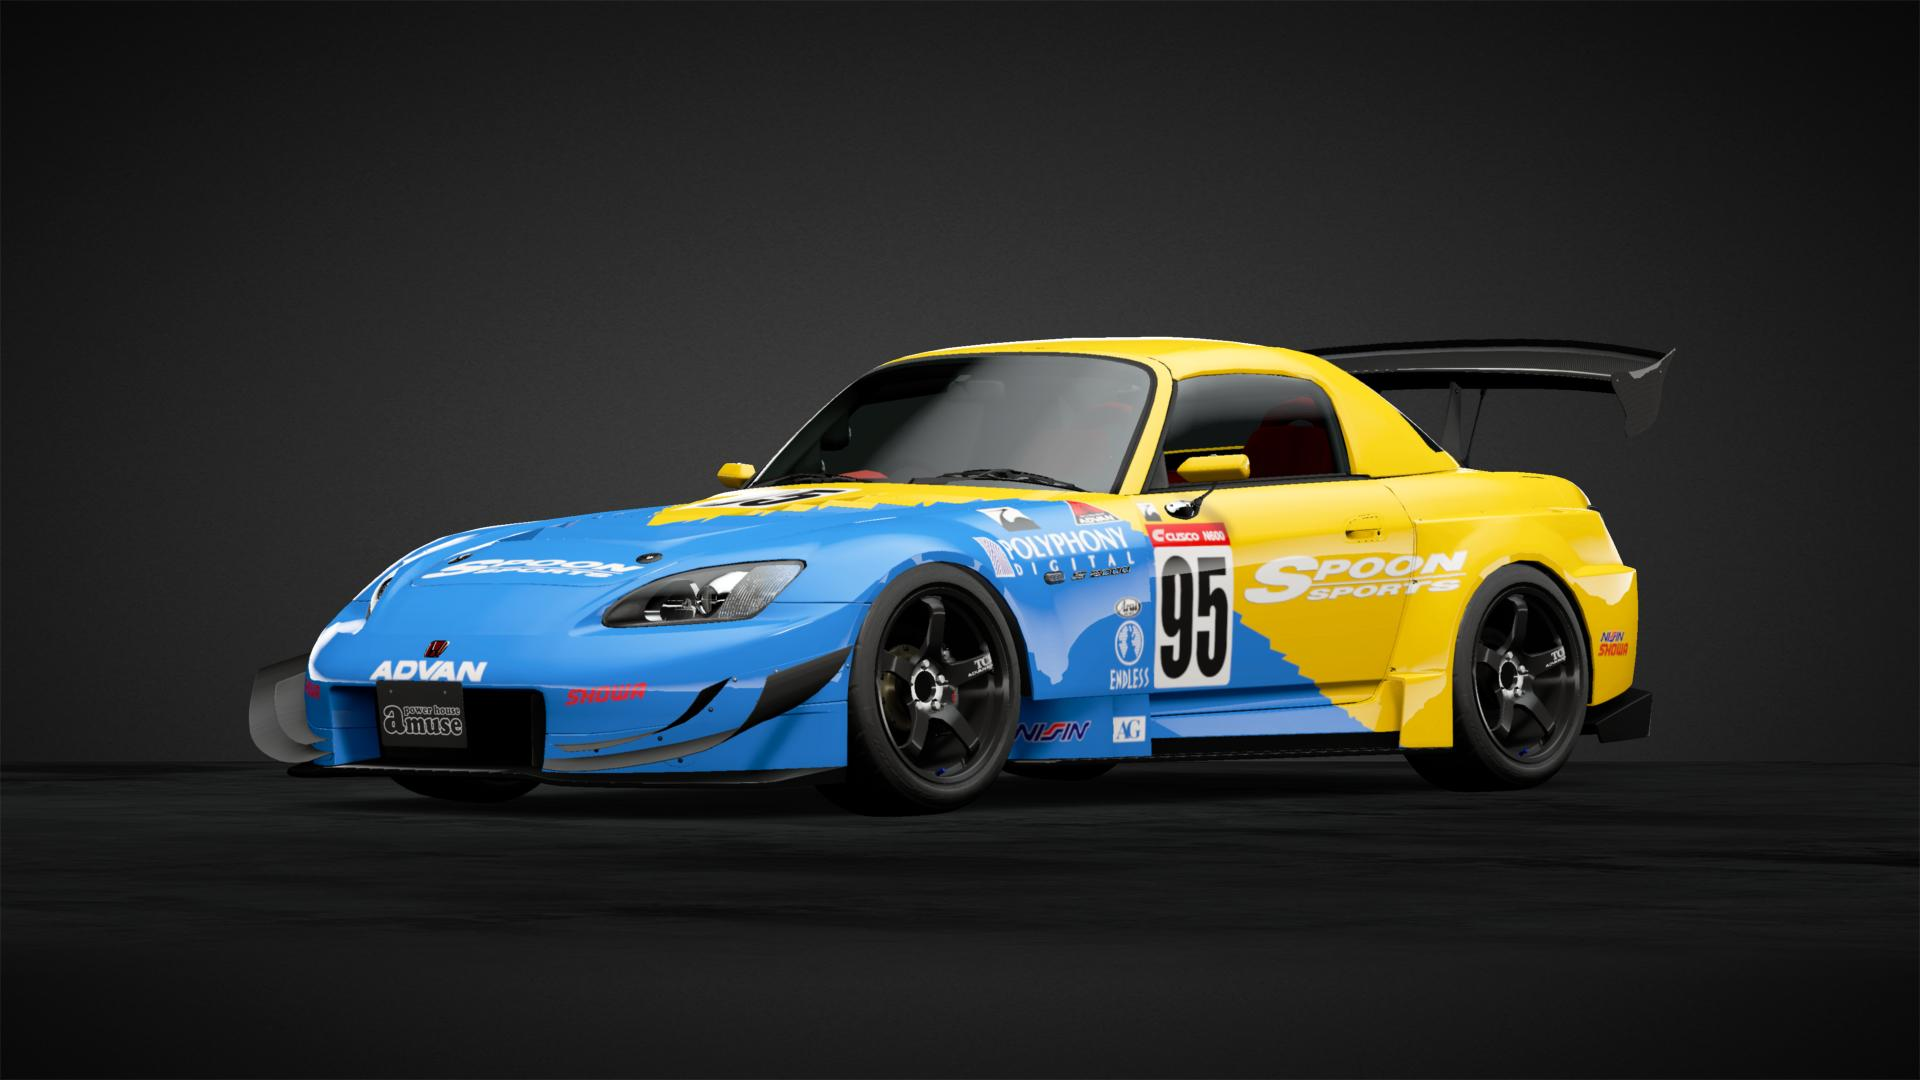 Spoon S2000 Race Car '00 - GT4 - Car Livery by syntex123